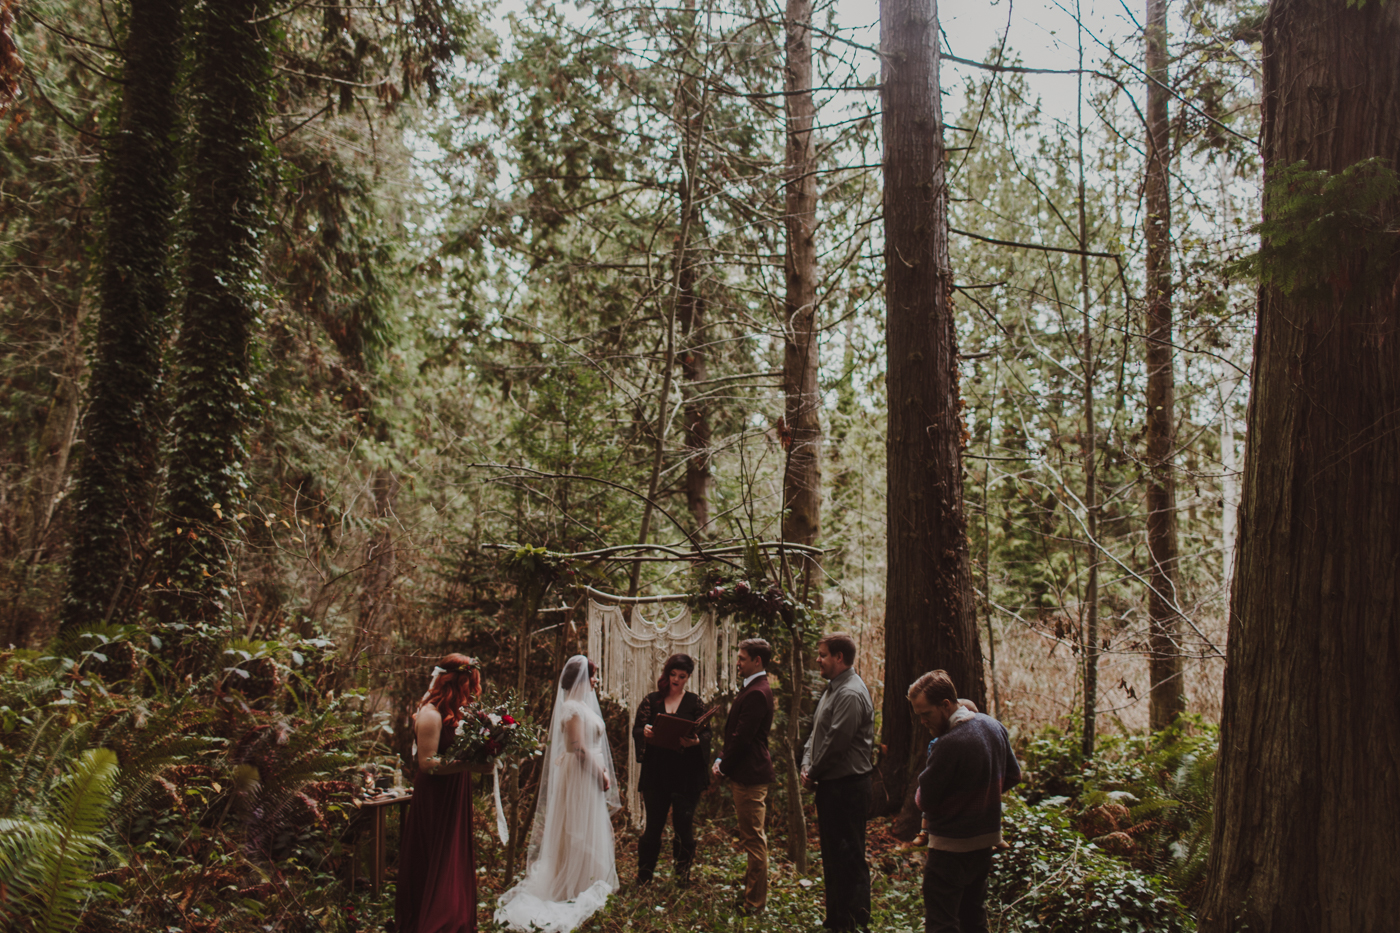 Olympic Peninsula Elopement-LizMorrow-56.jpg